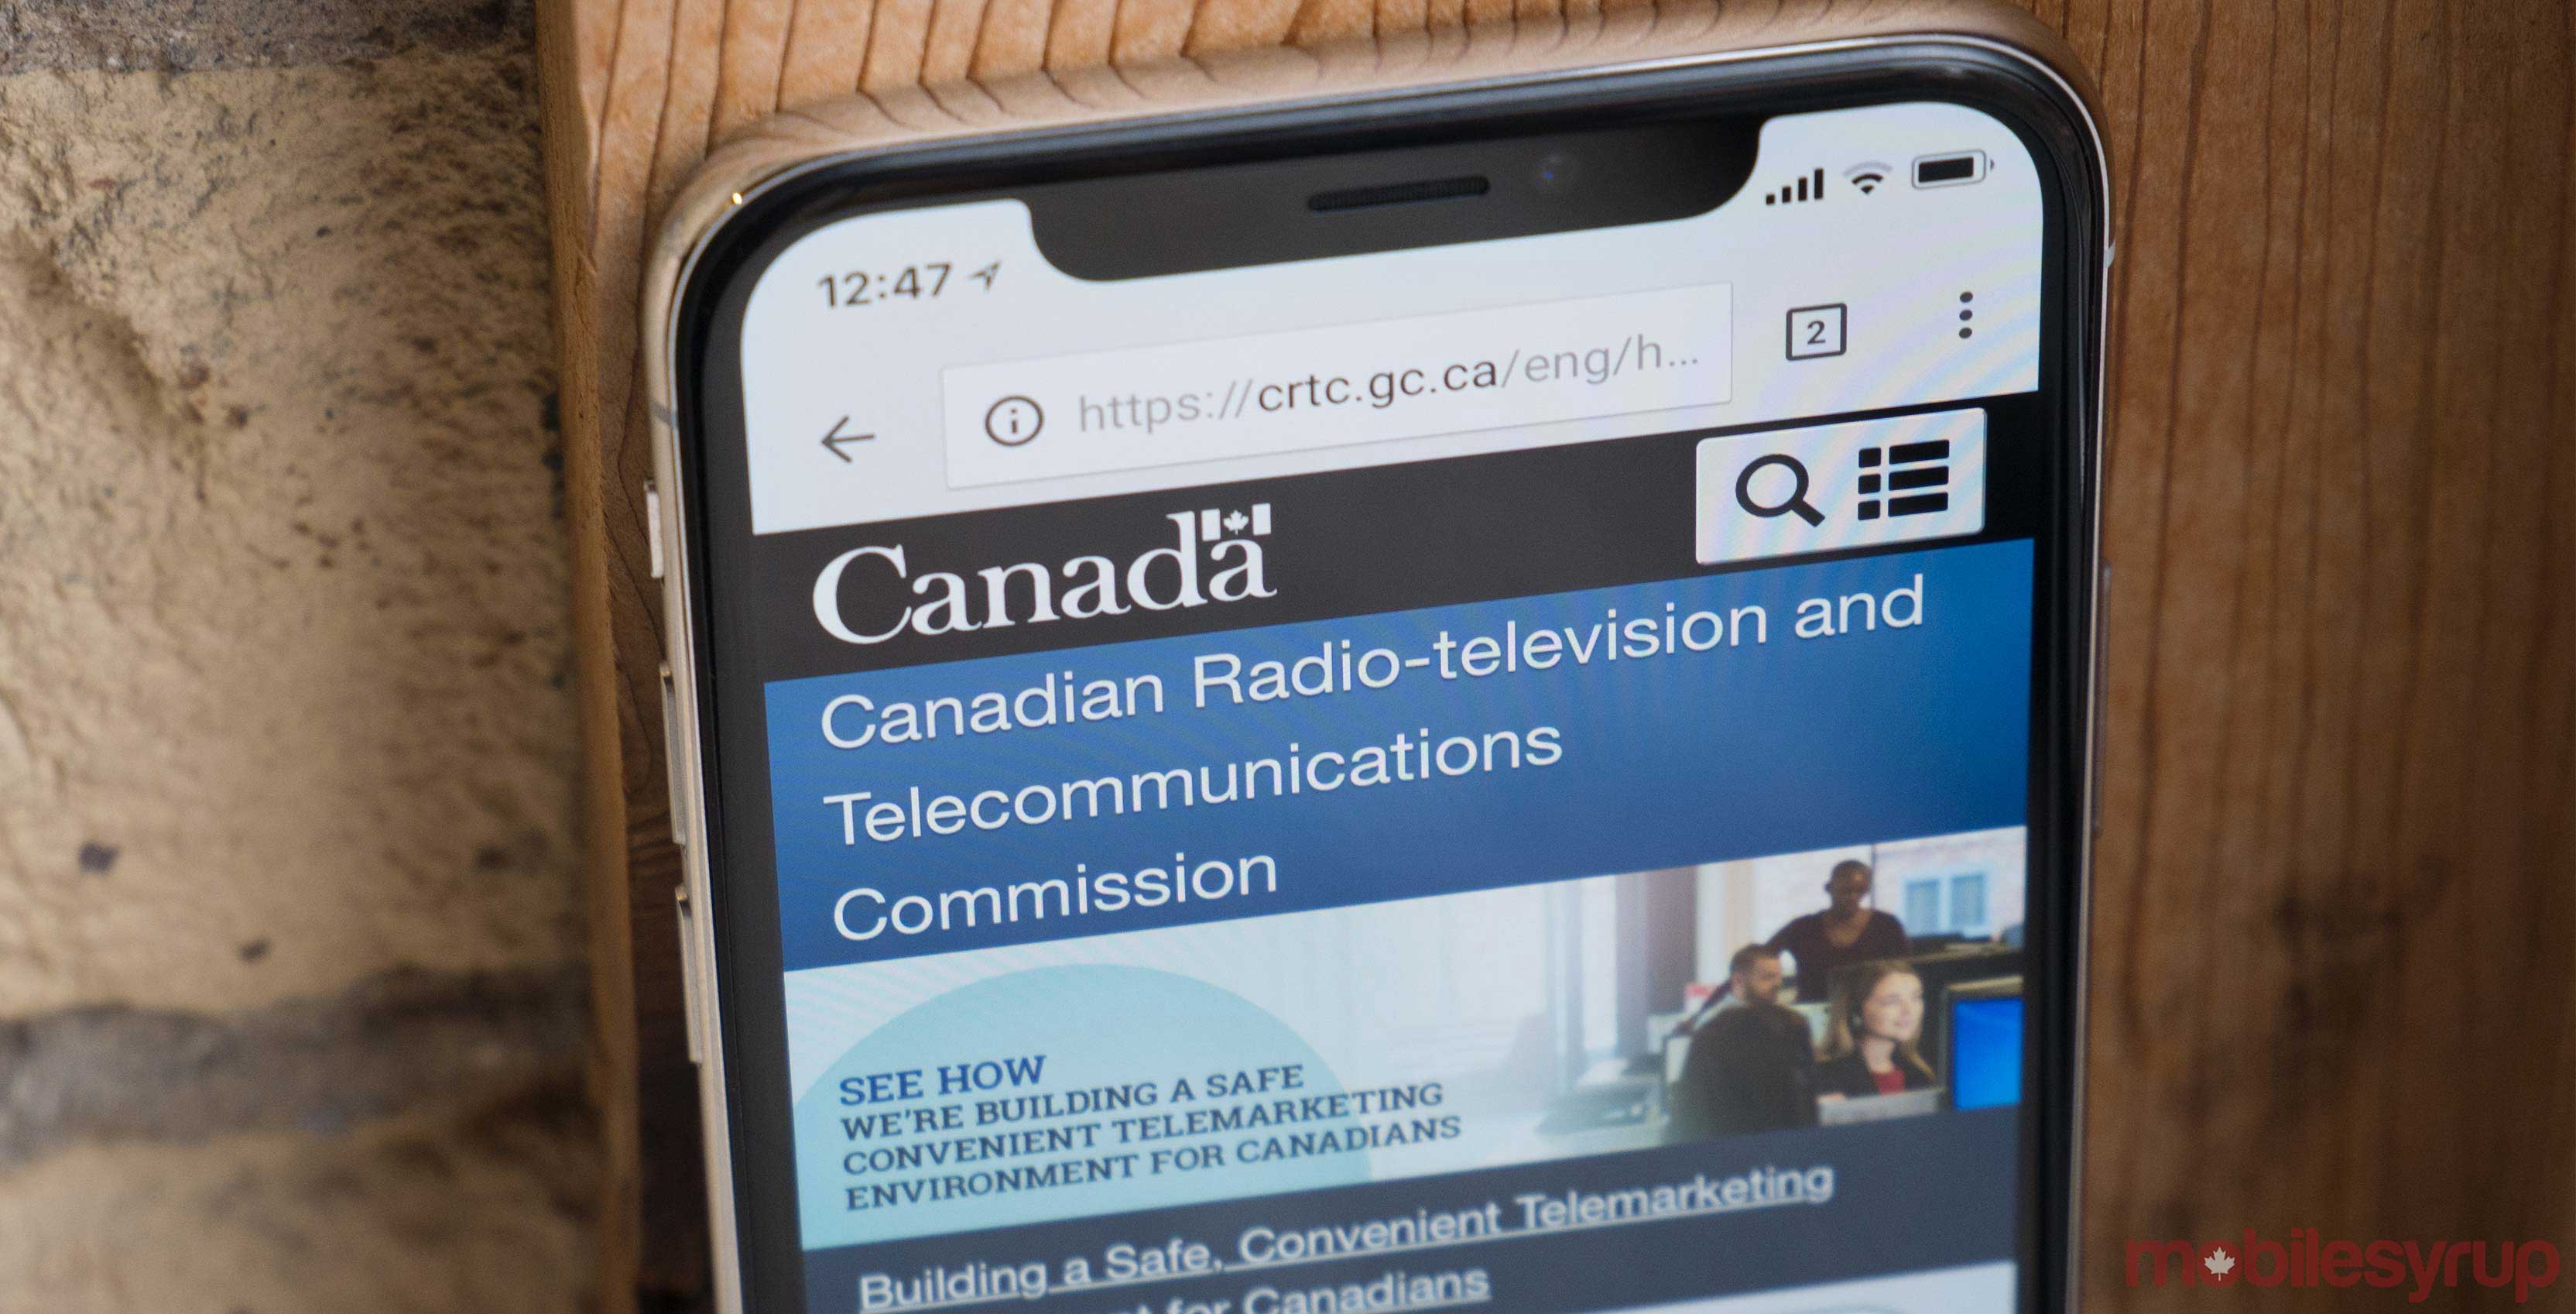 CRTC website on phone